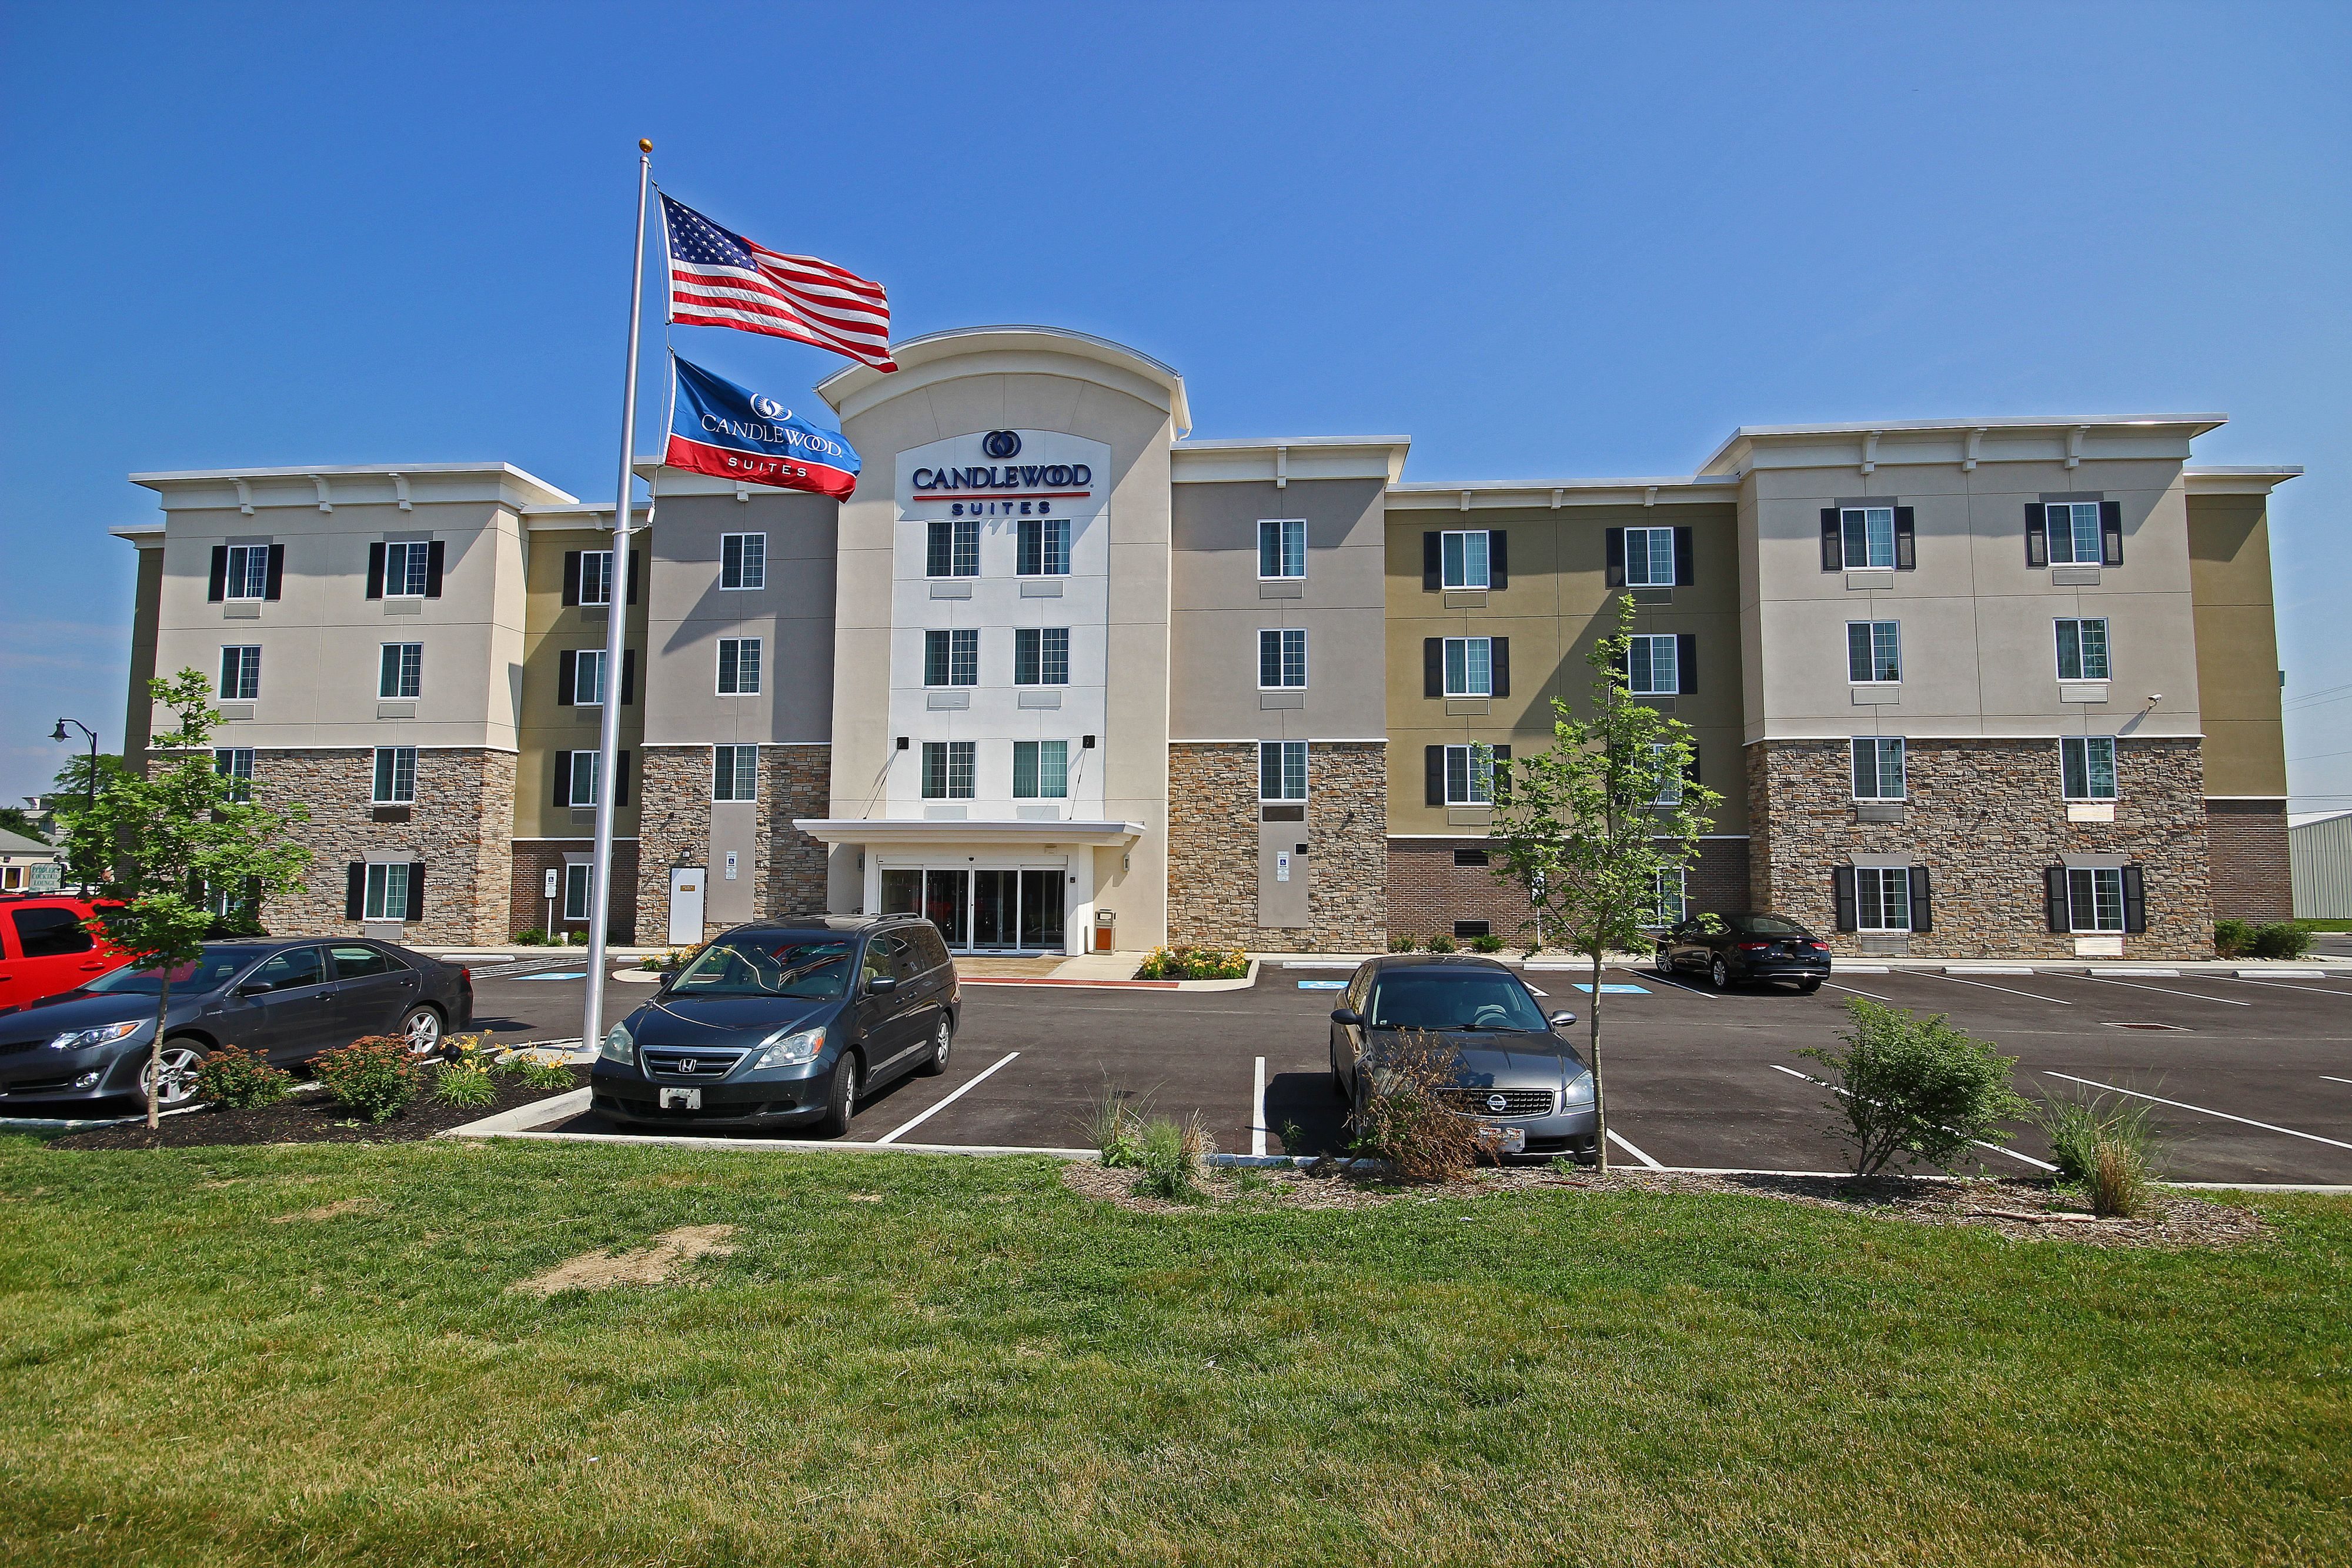 Candlewood Suites Cleveland-N. Olmsted image 5